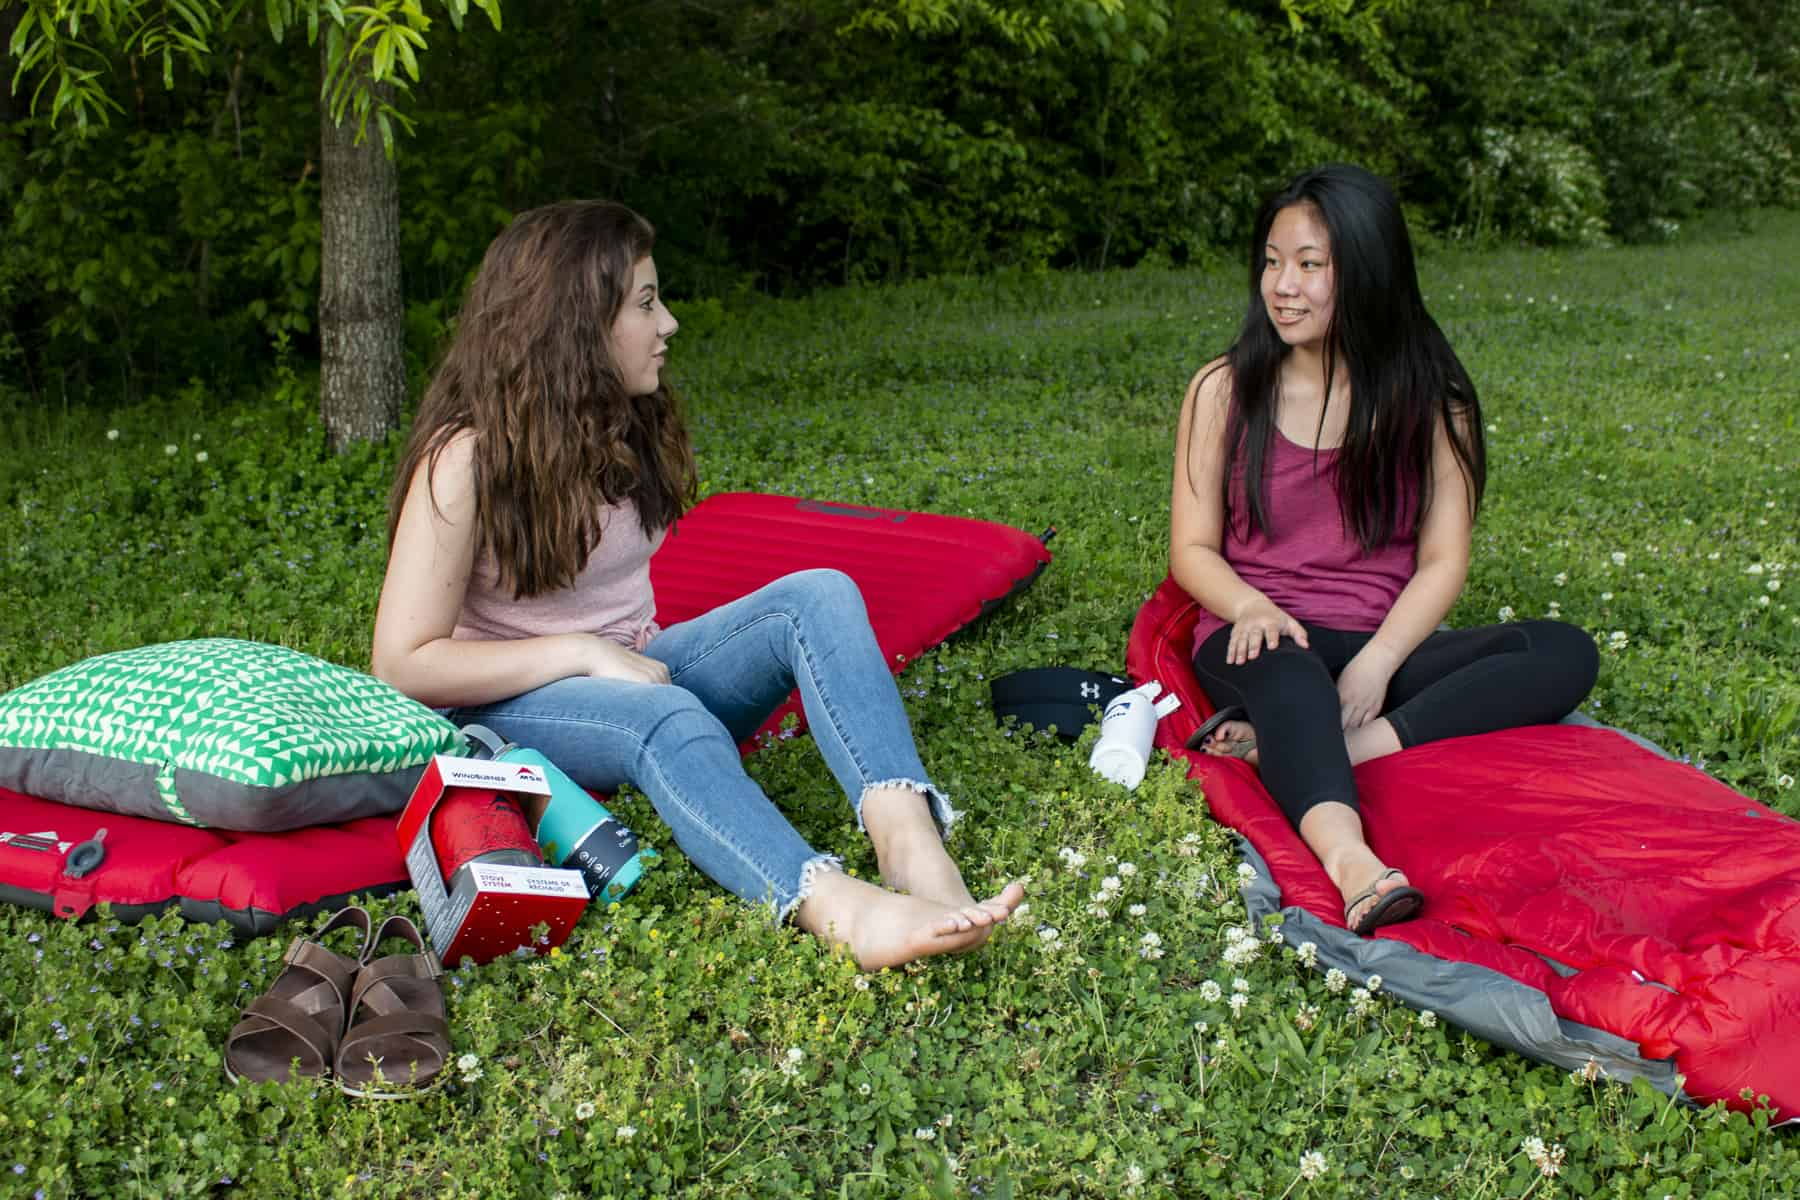 Two girls camping in green grass talking